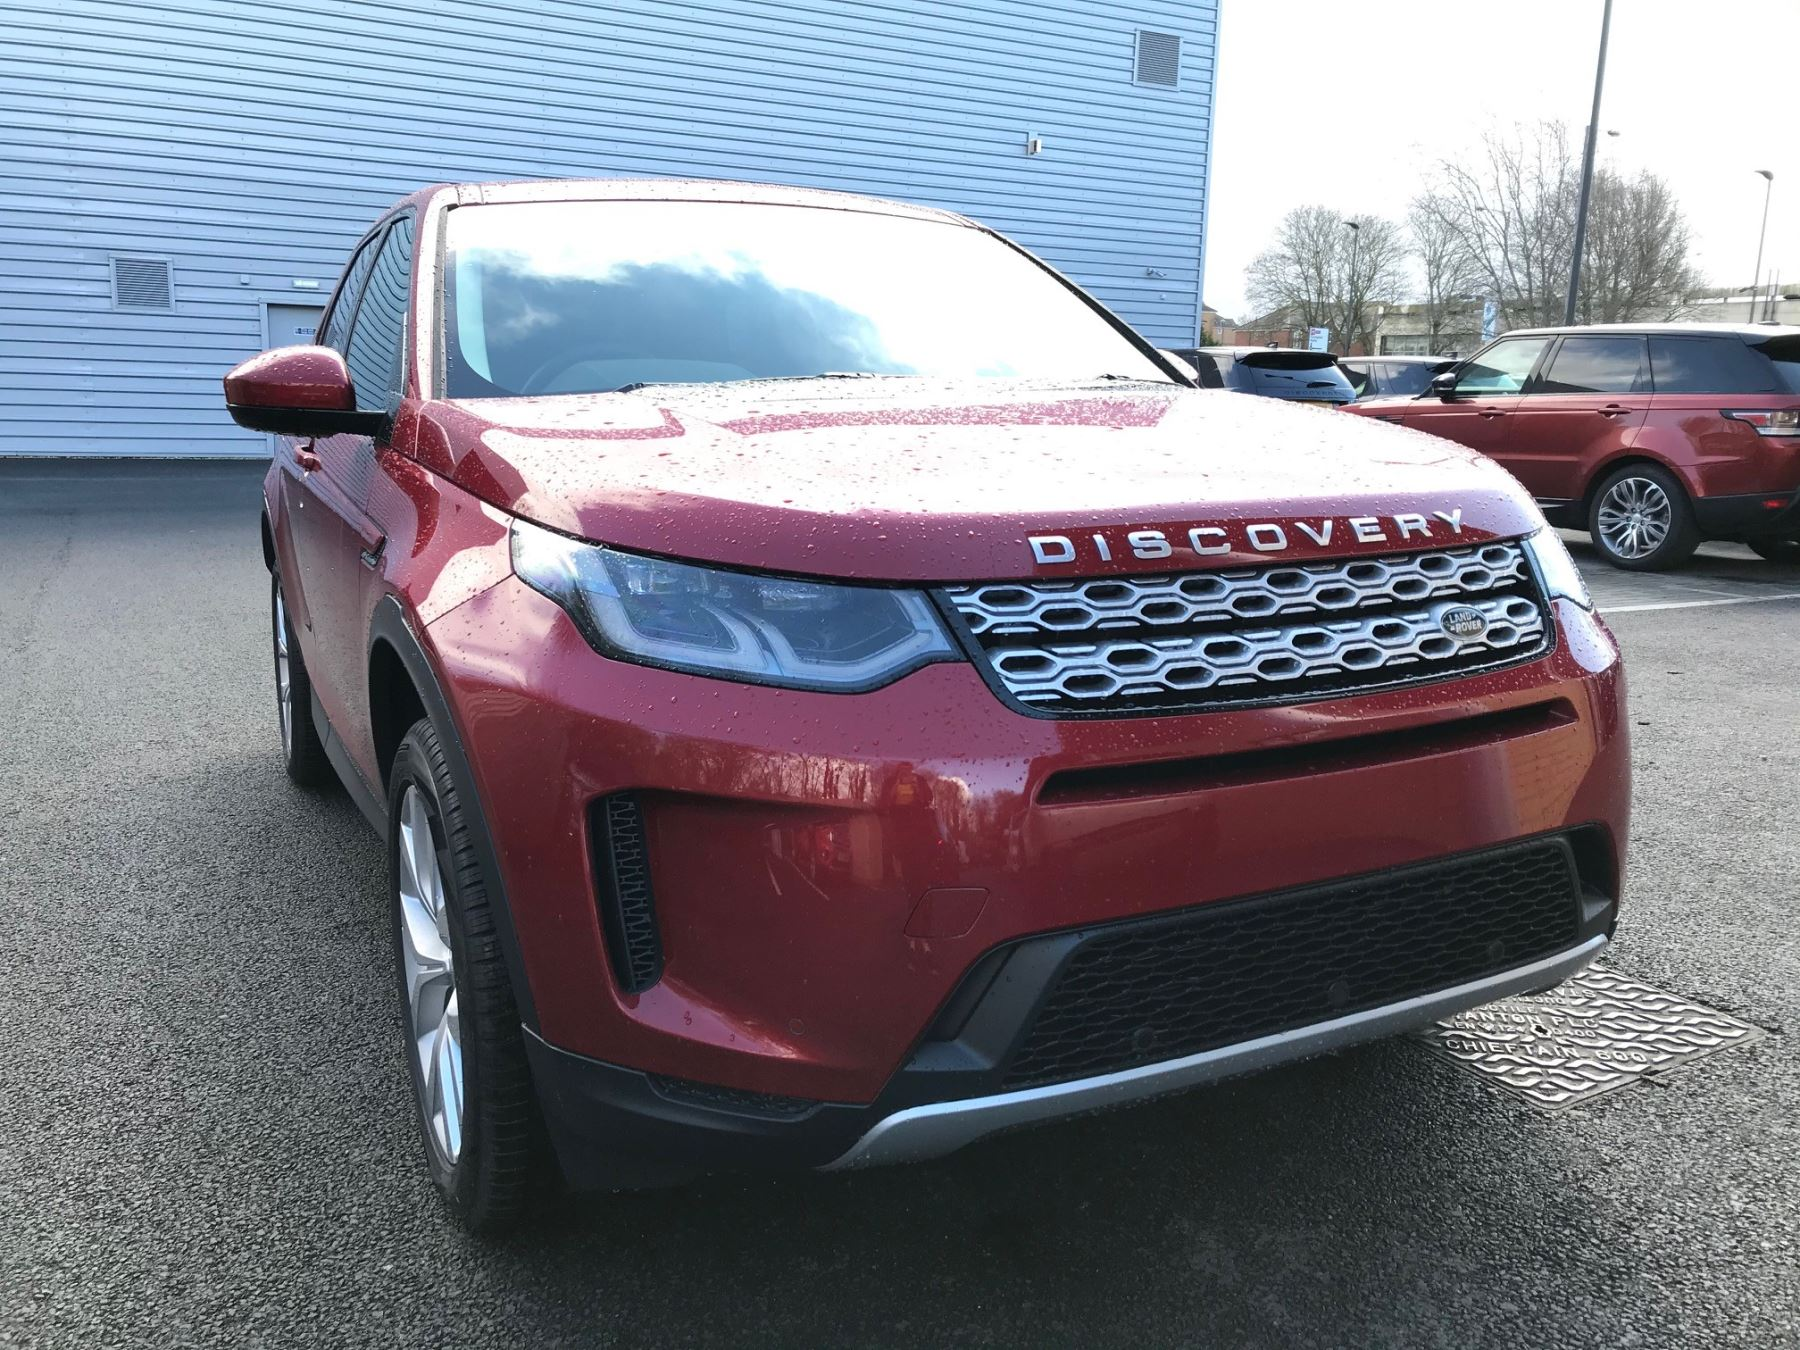 Land Rover Discovery Sport 2.0 D180 SE Diesel Automatic 5 door (19MY)